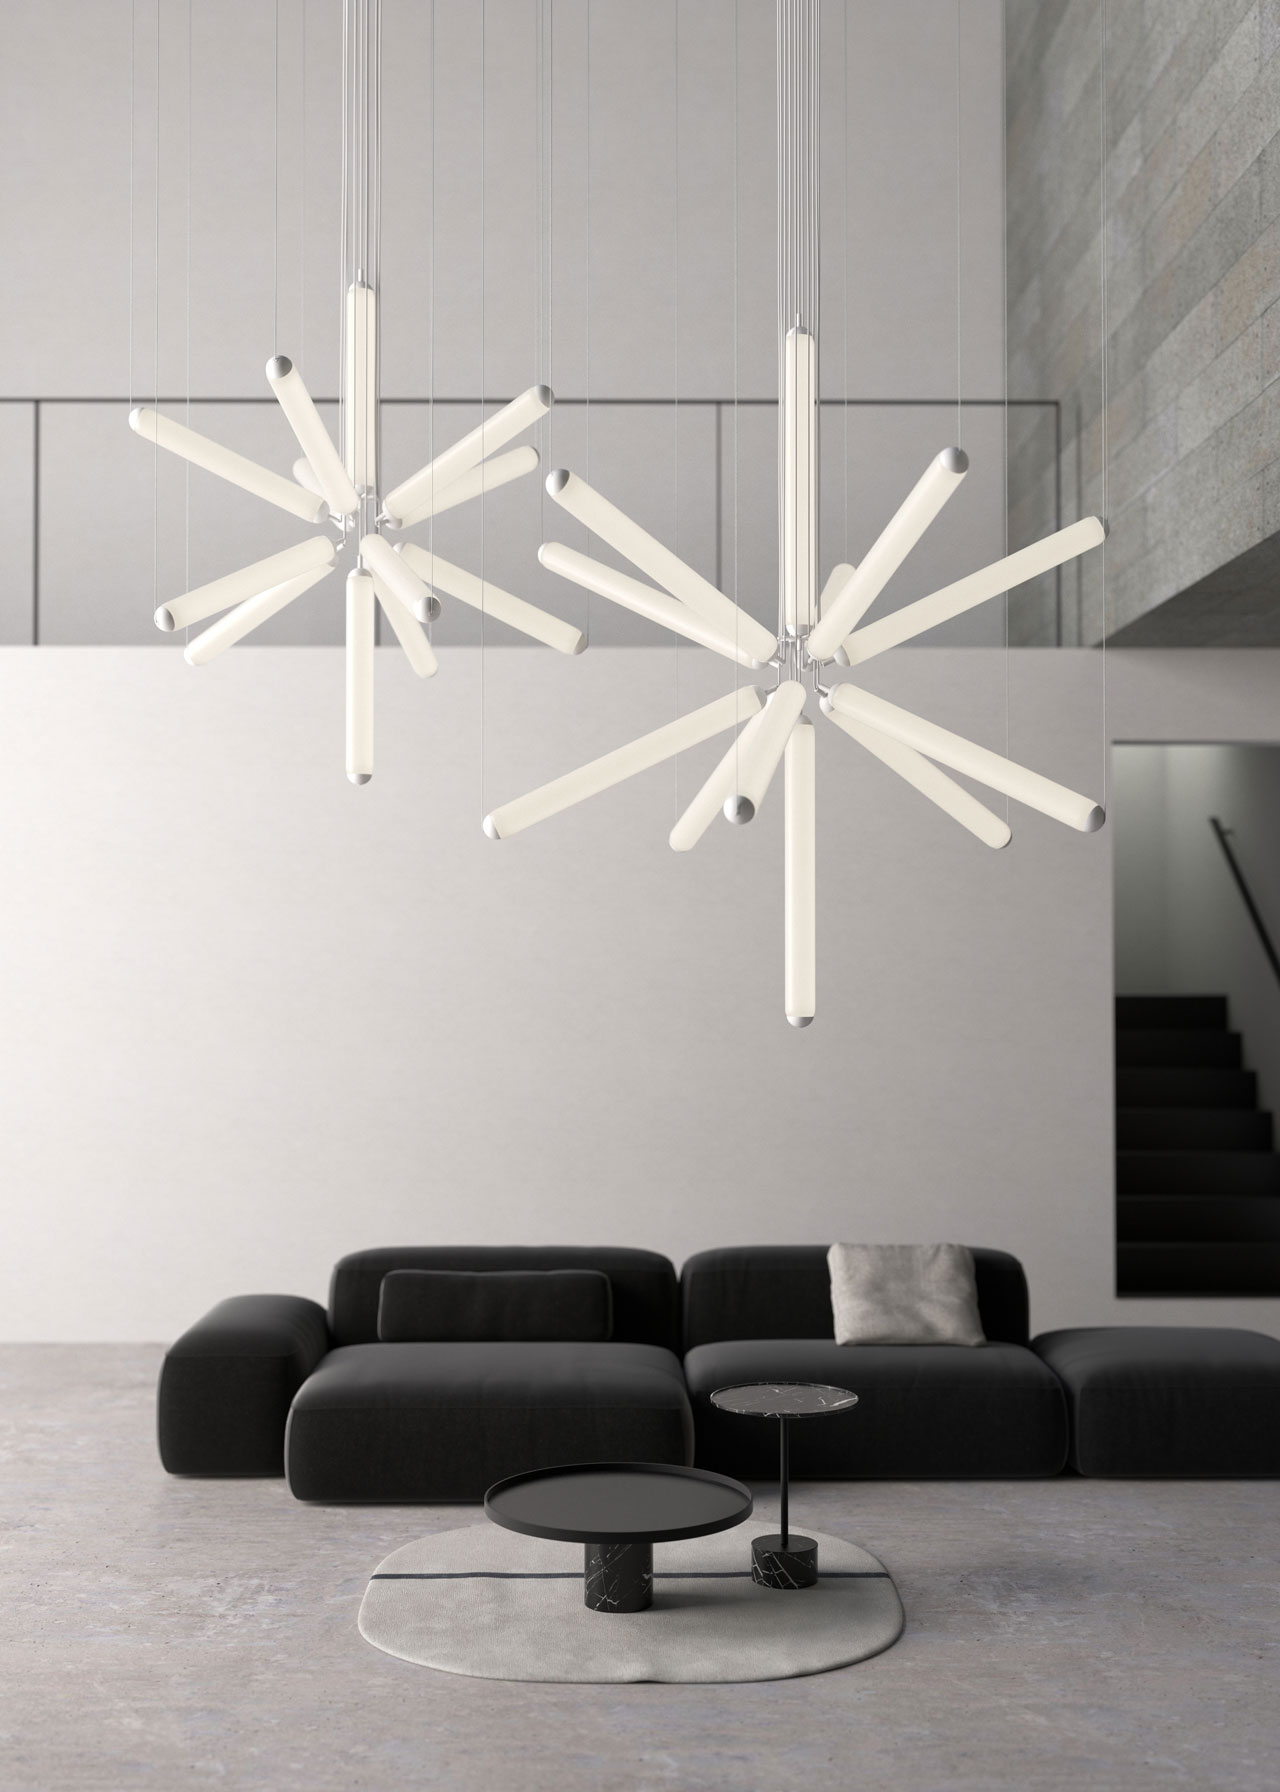 Puro Sparkle ceiling light by Lucie Koldova for Brokis.